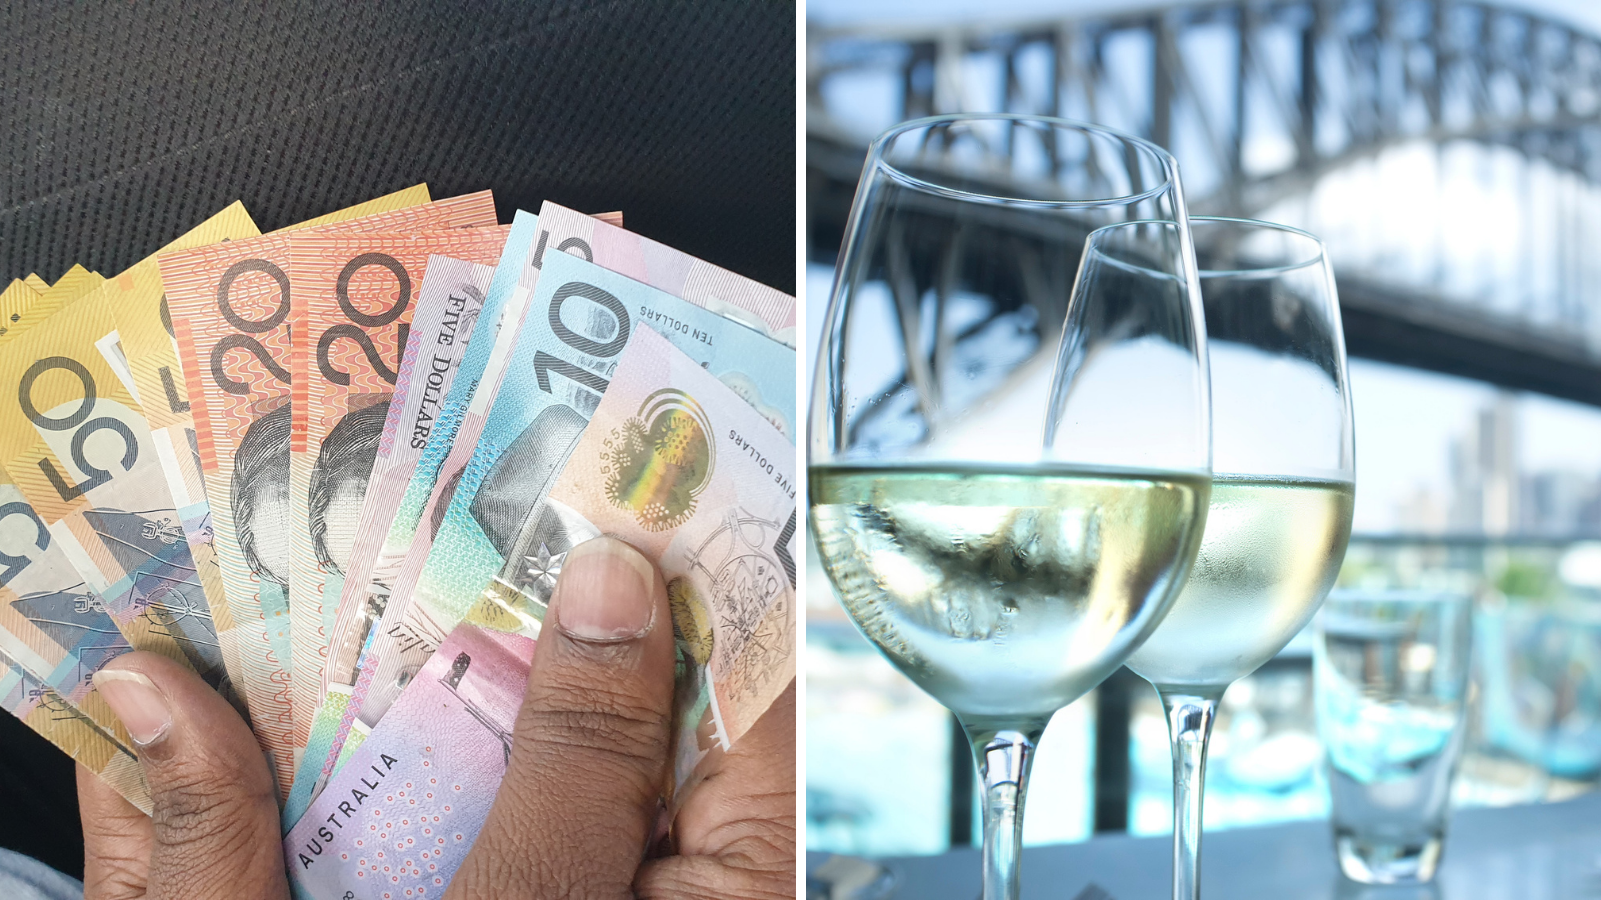 NSW Dine and Discover vouchers extended to July – Yahoo Finance Australia